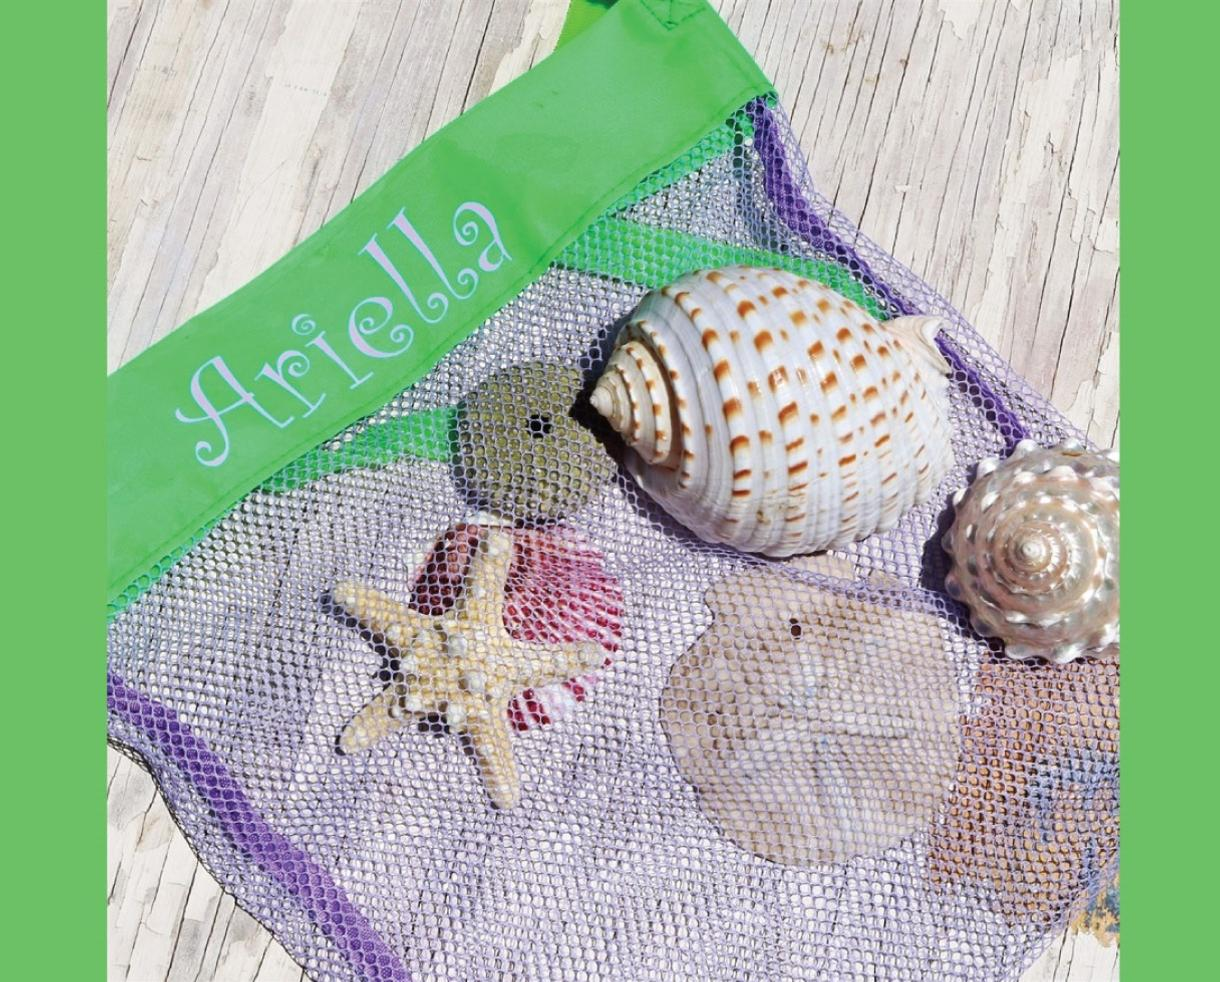 Personalized Seashell Collecting Beach Bag